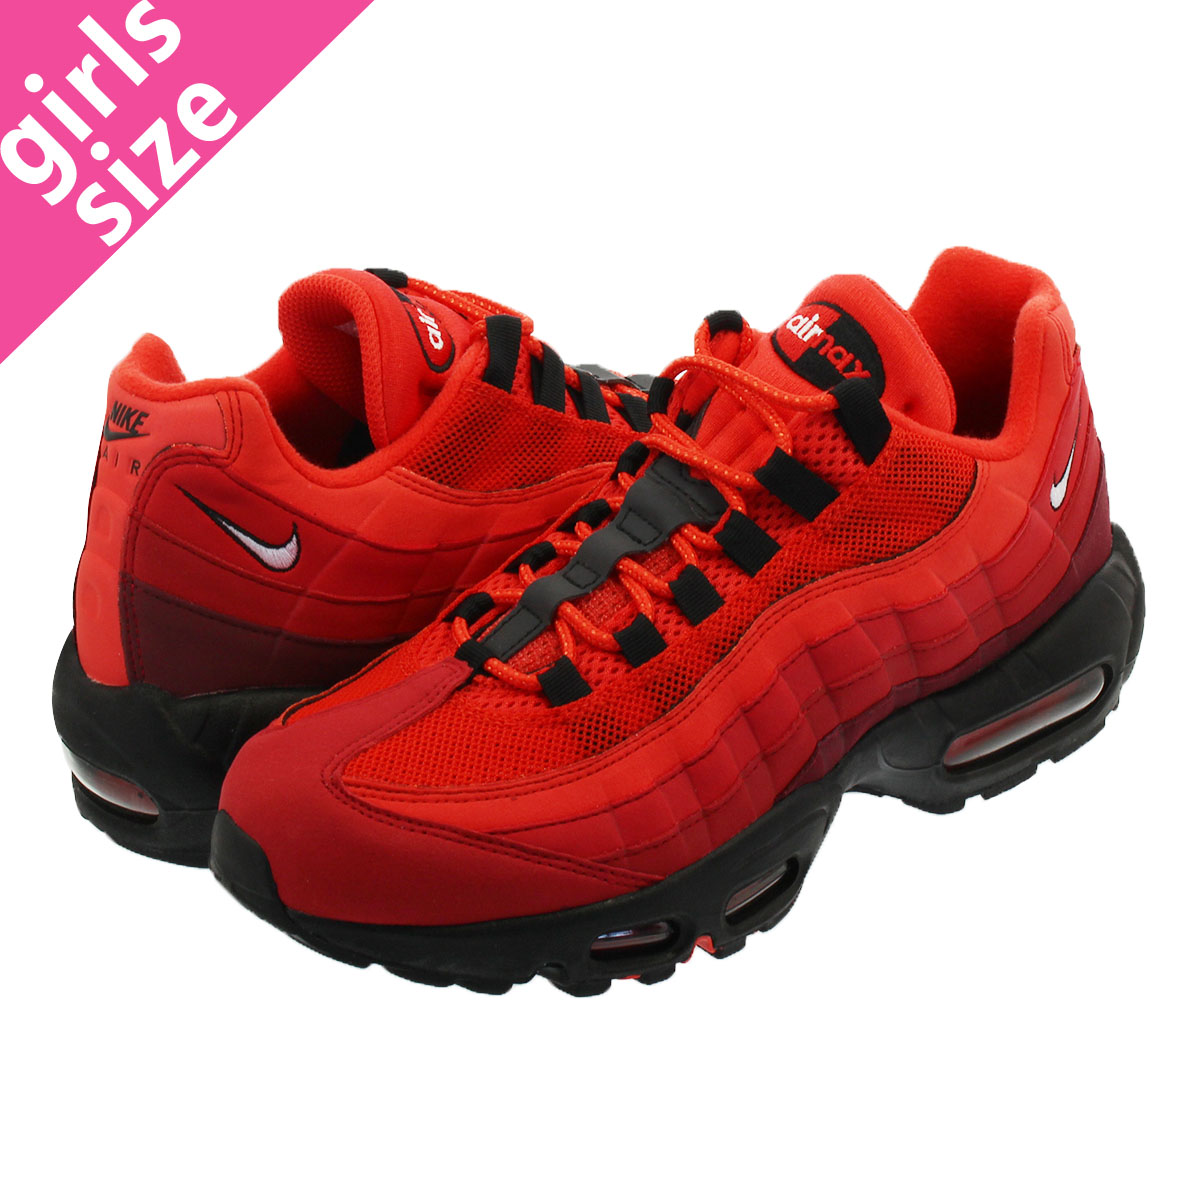 Women's Nike Air Max 95 October Red Black Girls Running